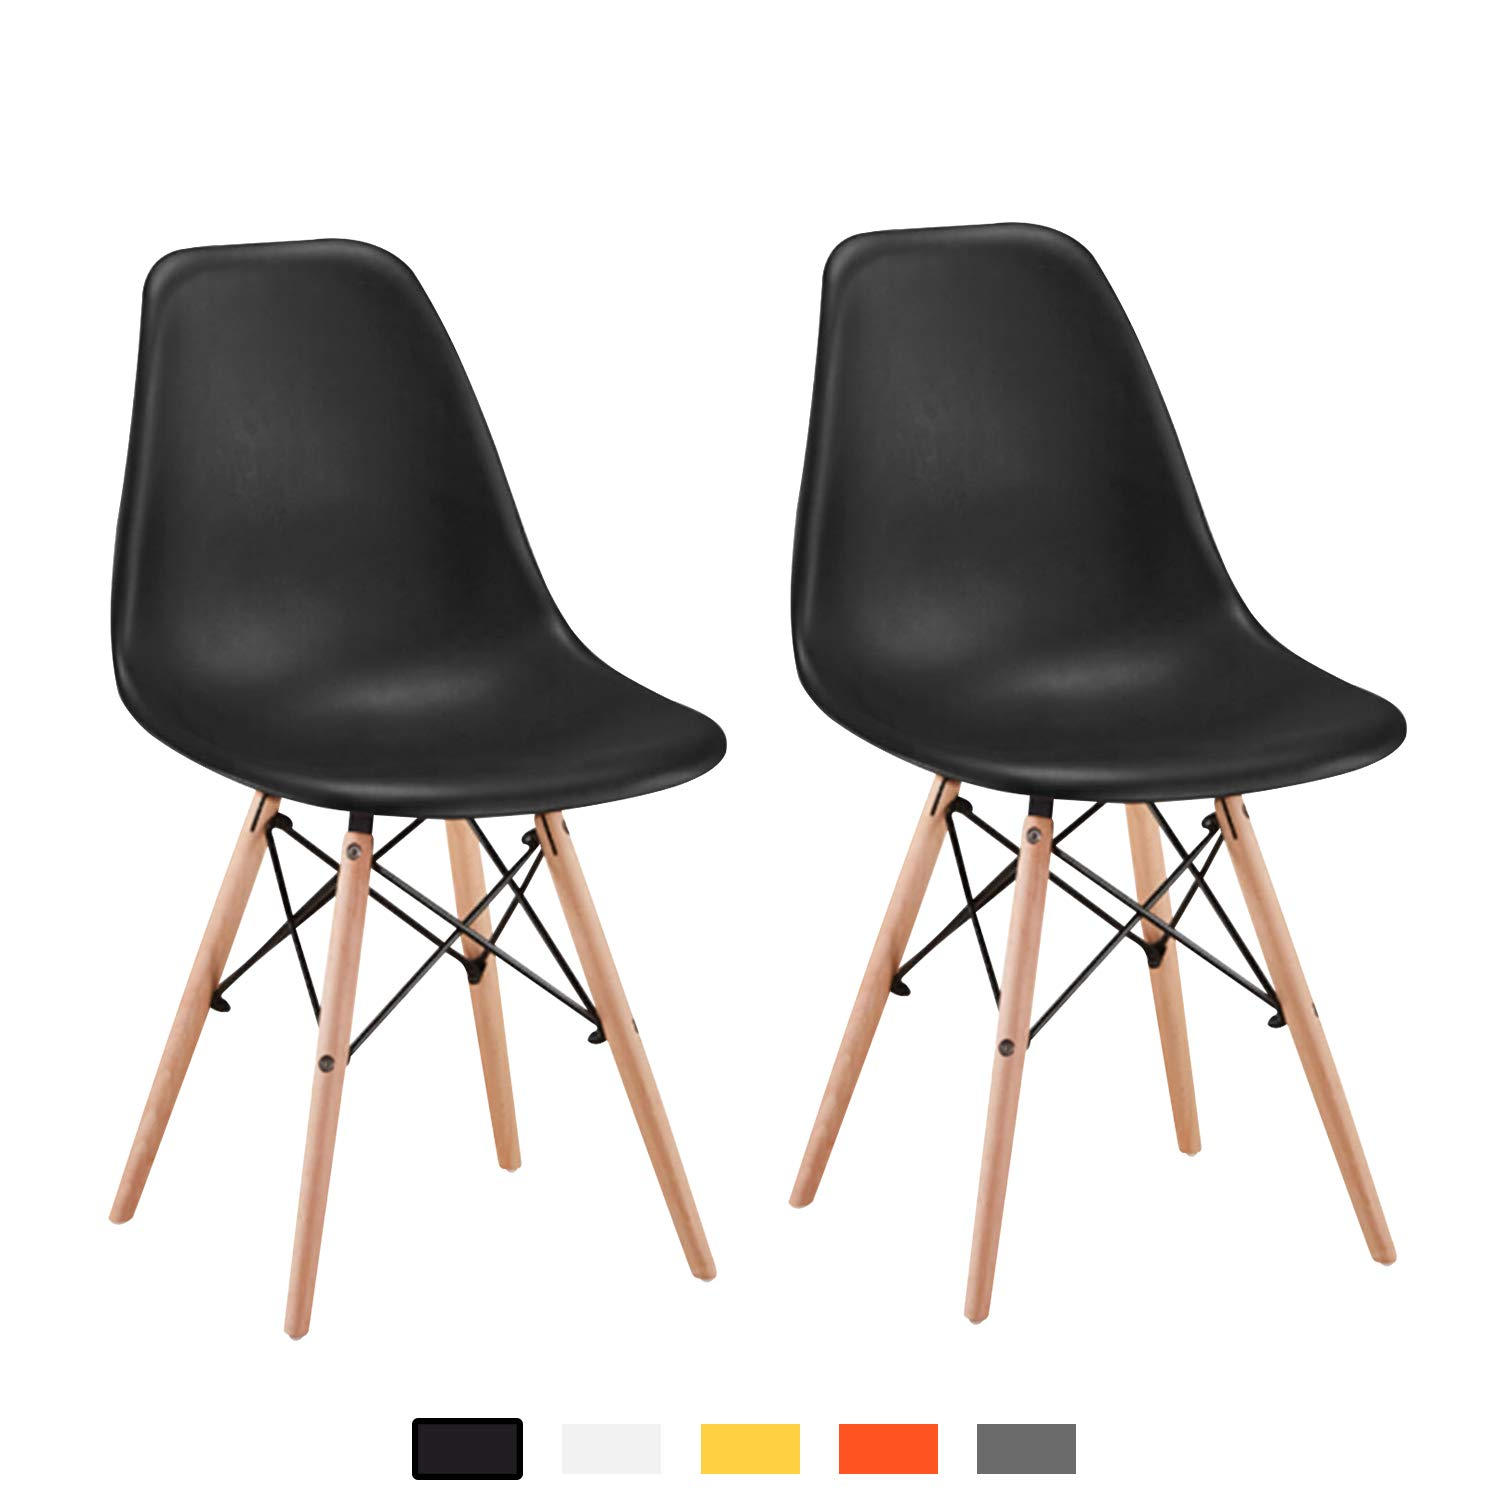 YEEFY Dining Chair Plastic Dining Room Chair Black Kitchen Chairs Set of 2 by YEEFY